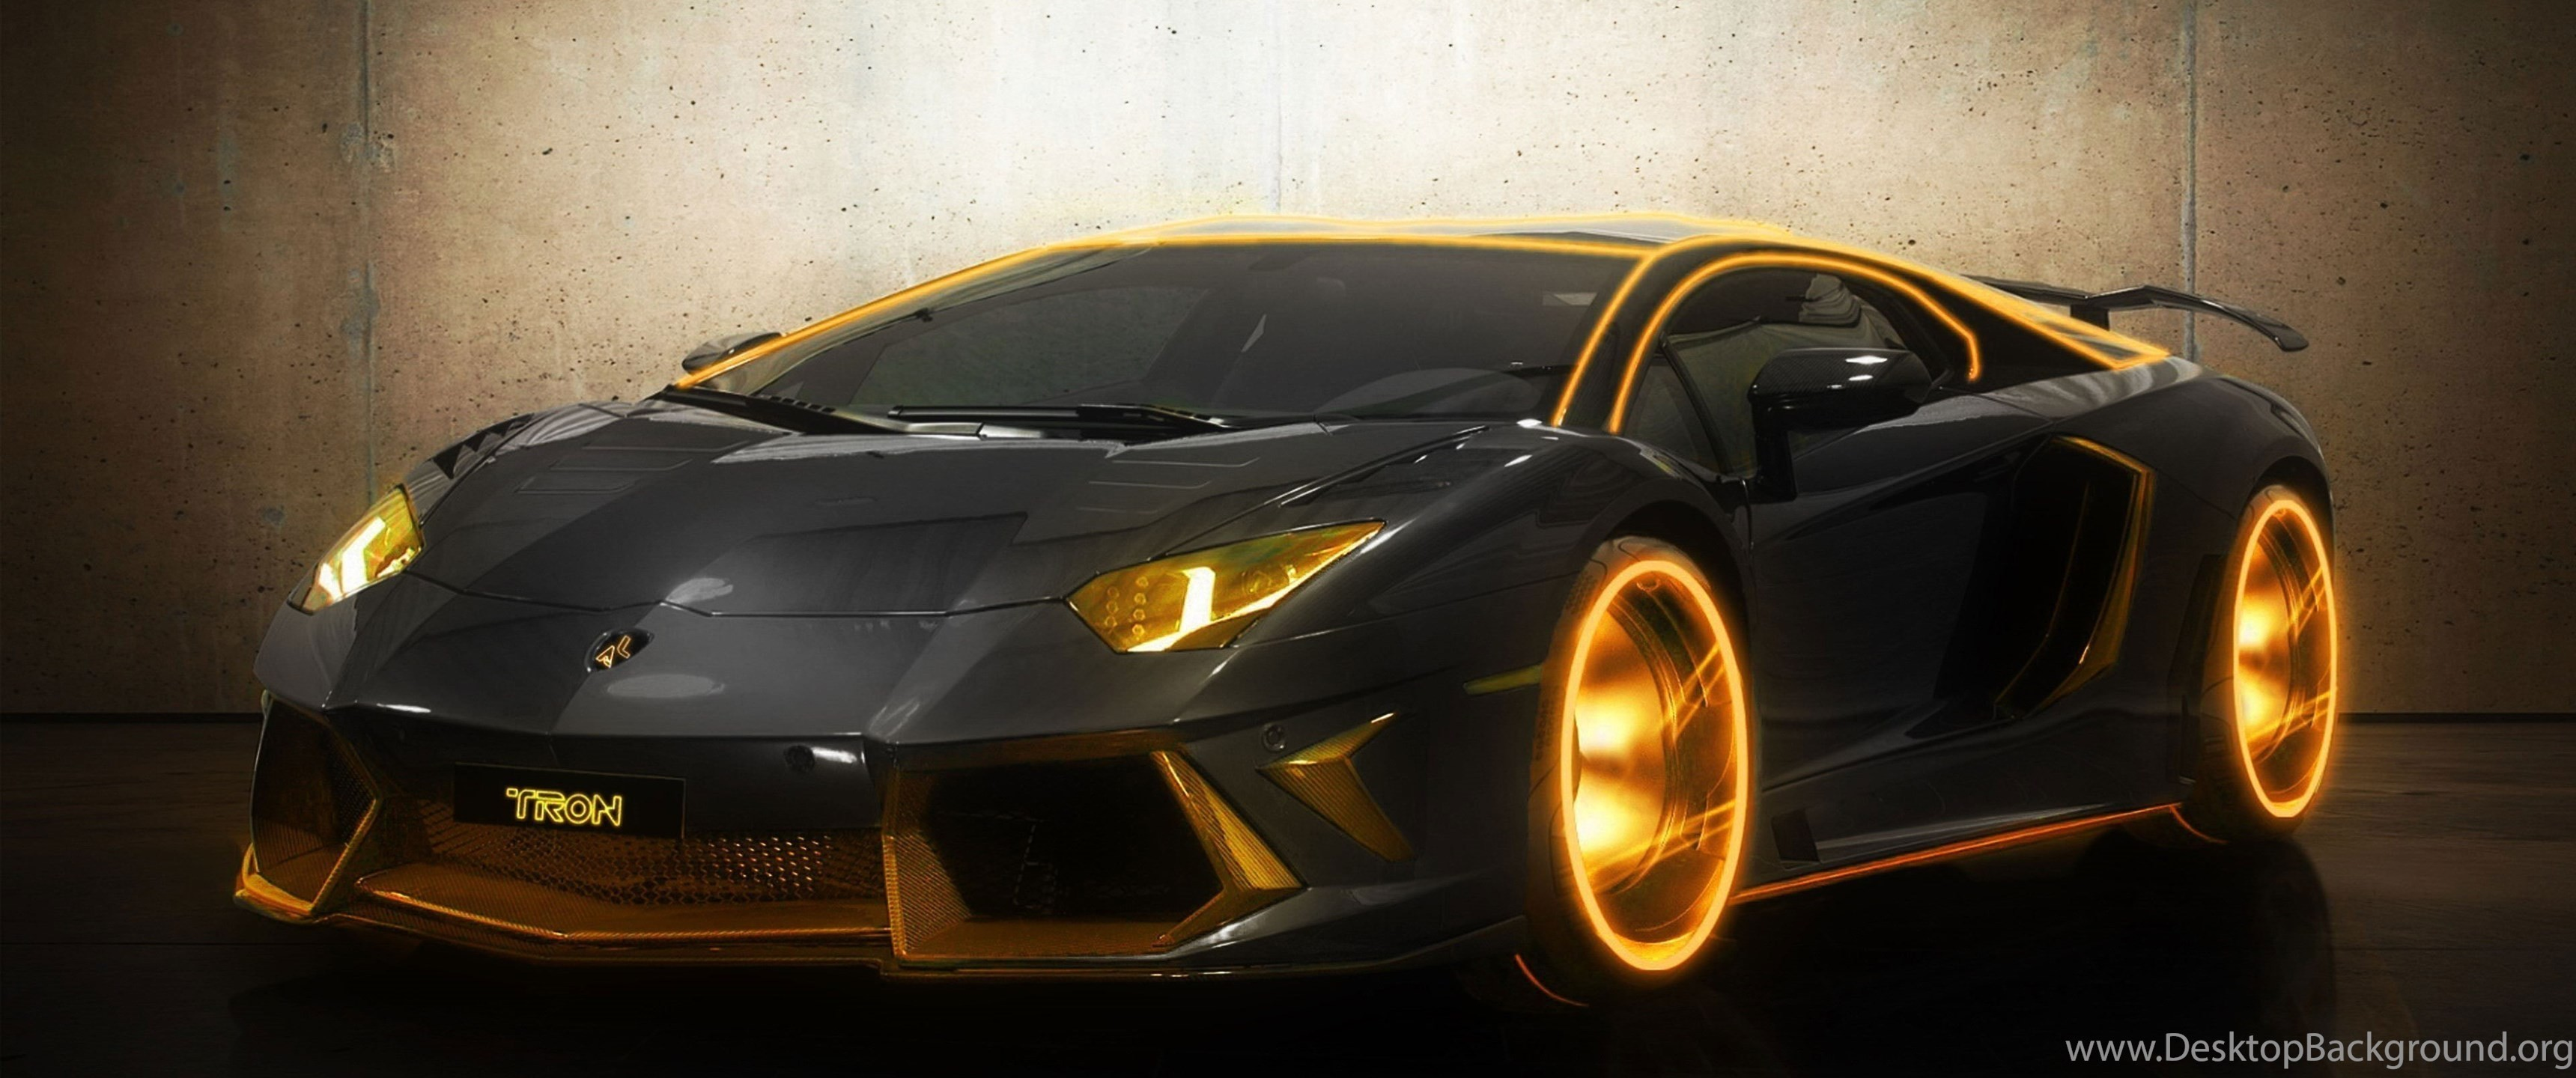 3440x1440 Best Car Wallpapers Of Lamborghini Aventador Lp700 4 Tron Dodge Challenger Wallpaper  Iphone